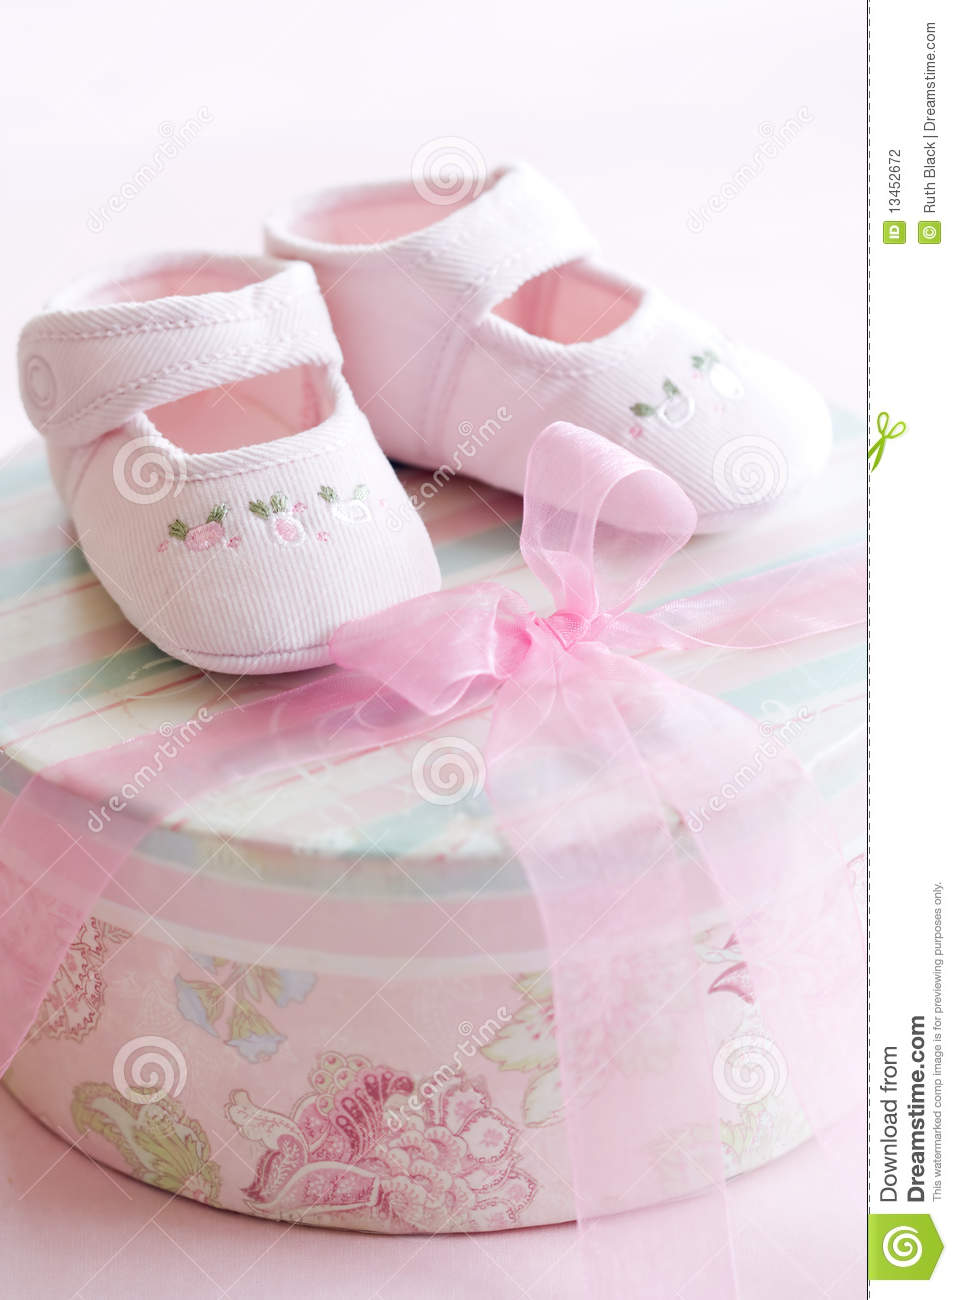 Cute Indian Baby Images For Wallpaper Pink Baby Shoes Stock Photo Image Of Girl Shower Baby